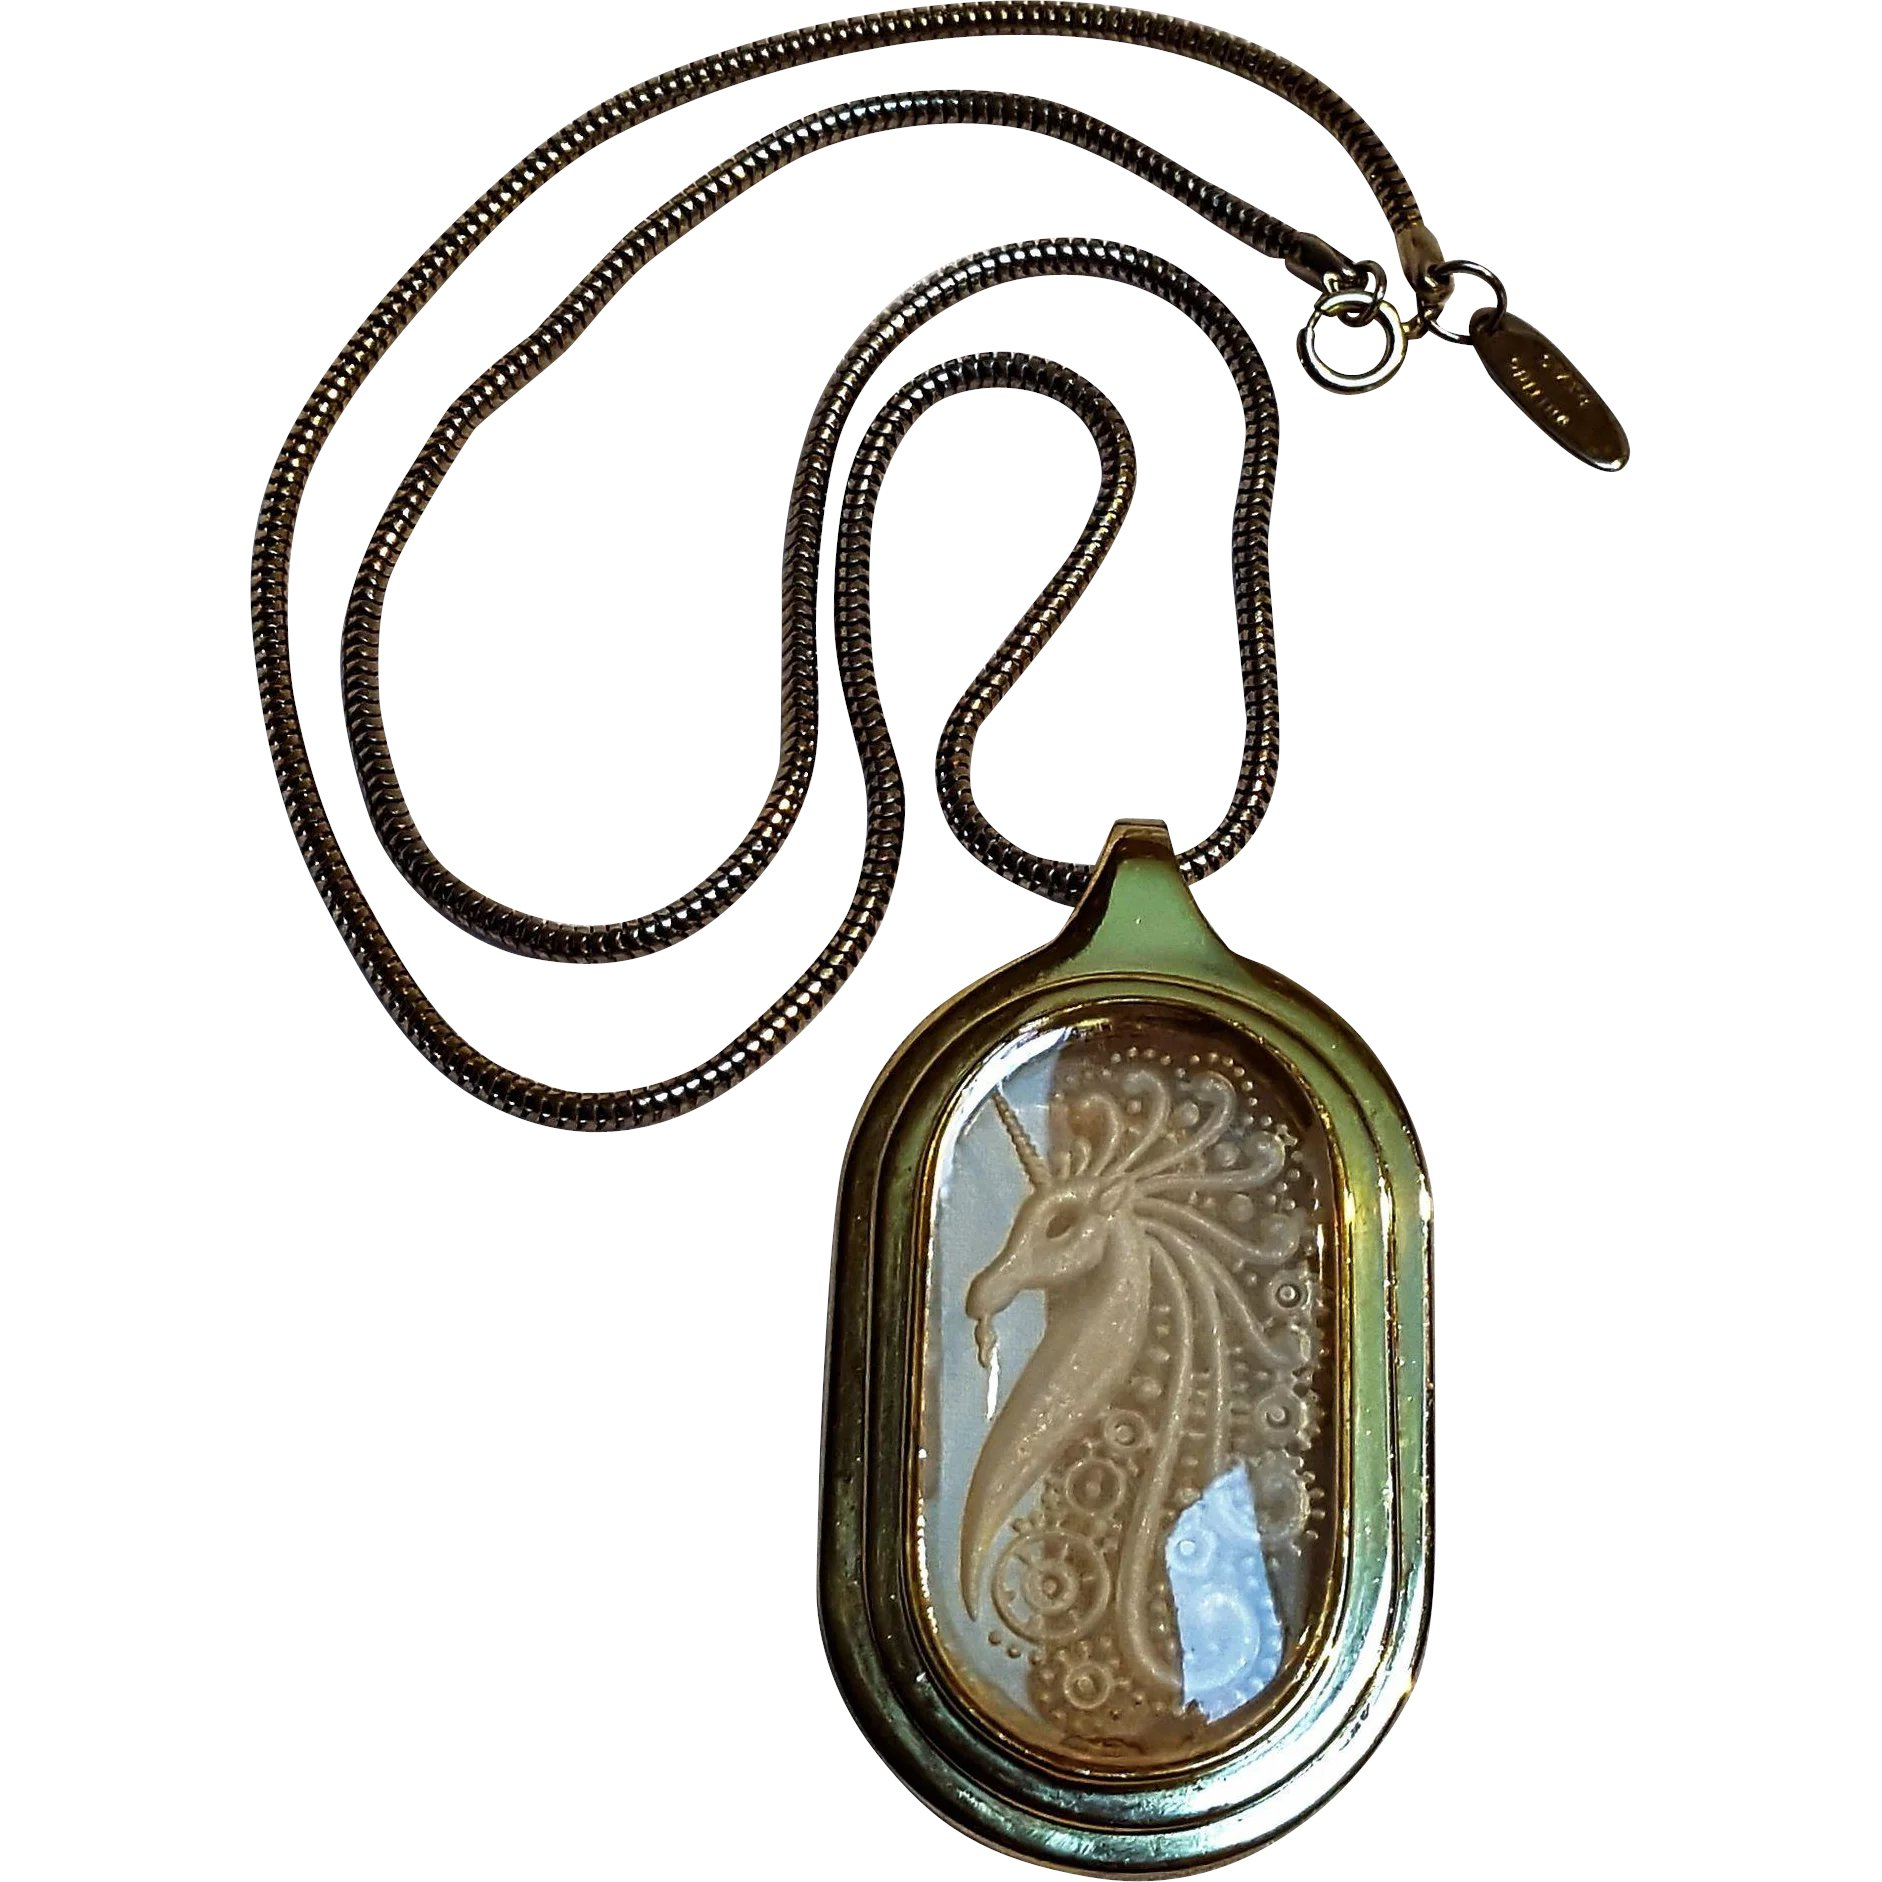 venetian green cast intaglio irvina jewelry at master pearls glass id peridot necklace pendant shell j necklaces rubies choker